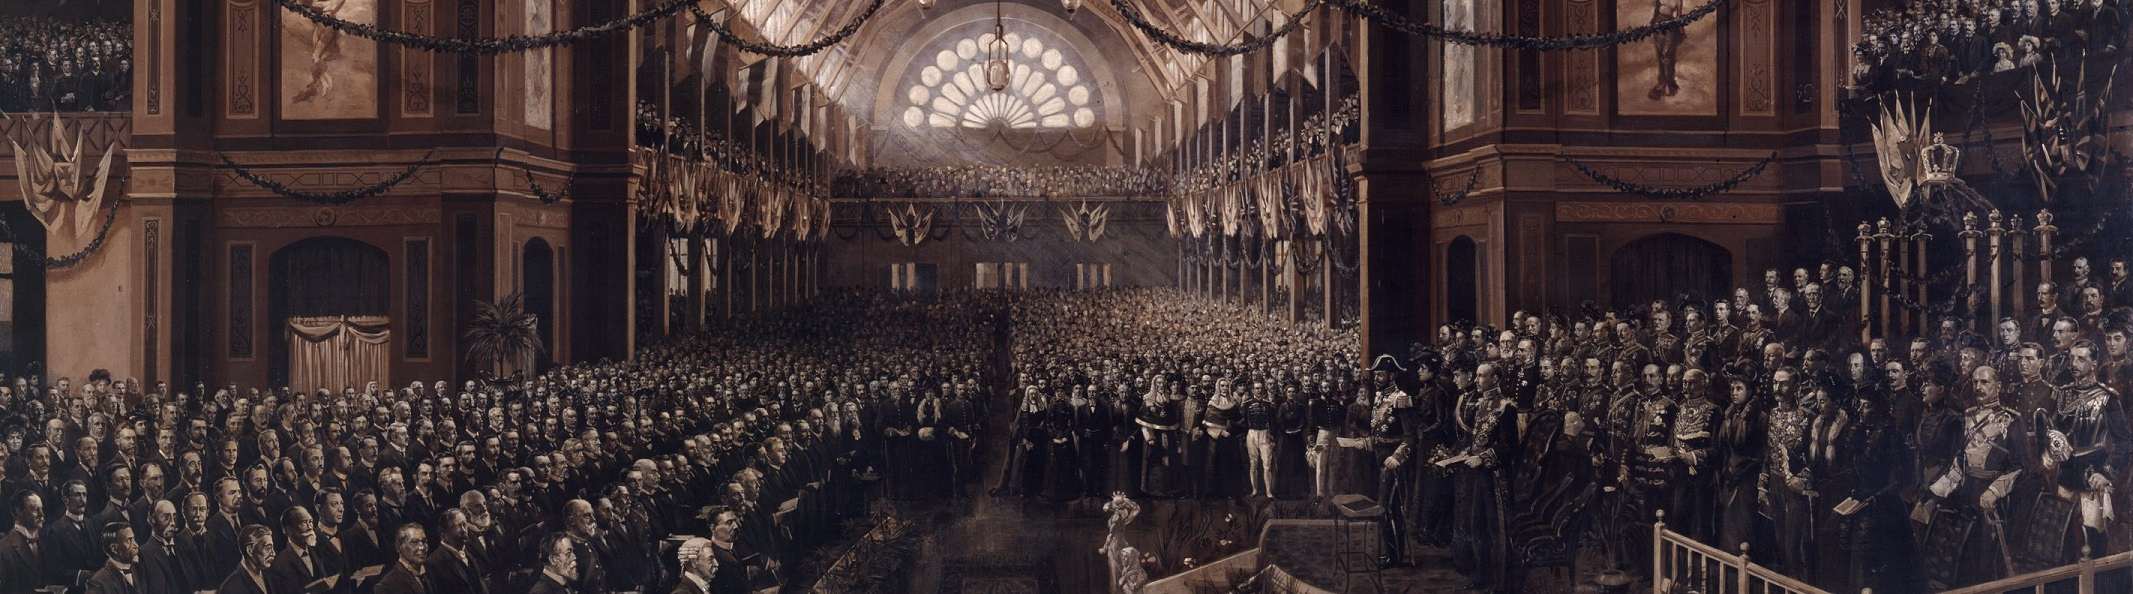 painting-the-opening-commonwealth-parliament-charles-nuttall small